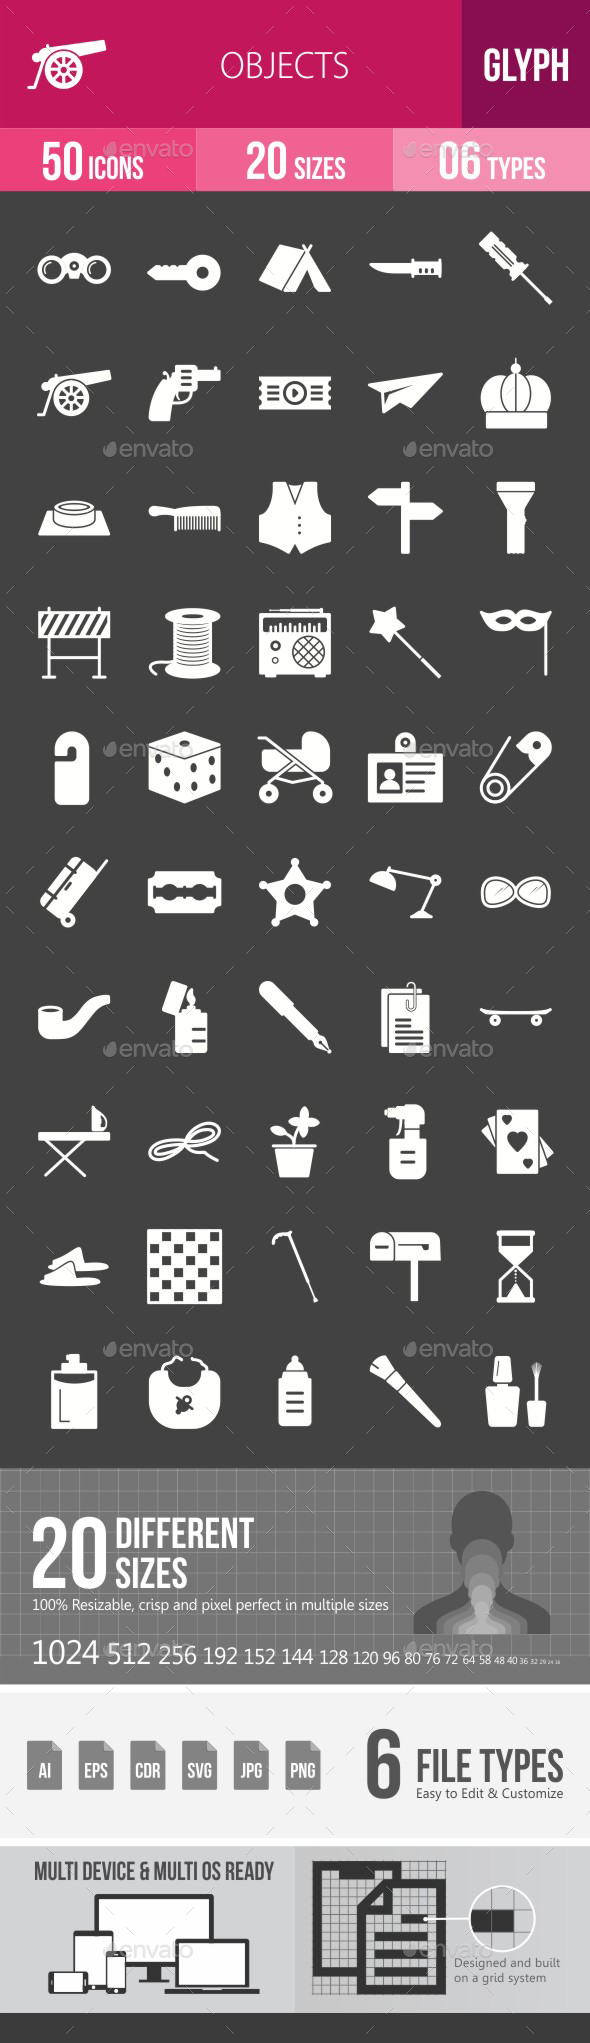 Objects Glyph Inverted Icons - Icons